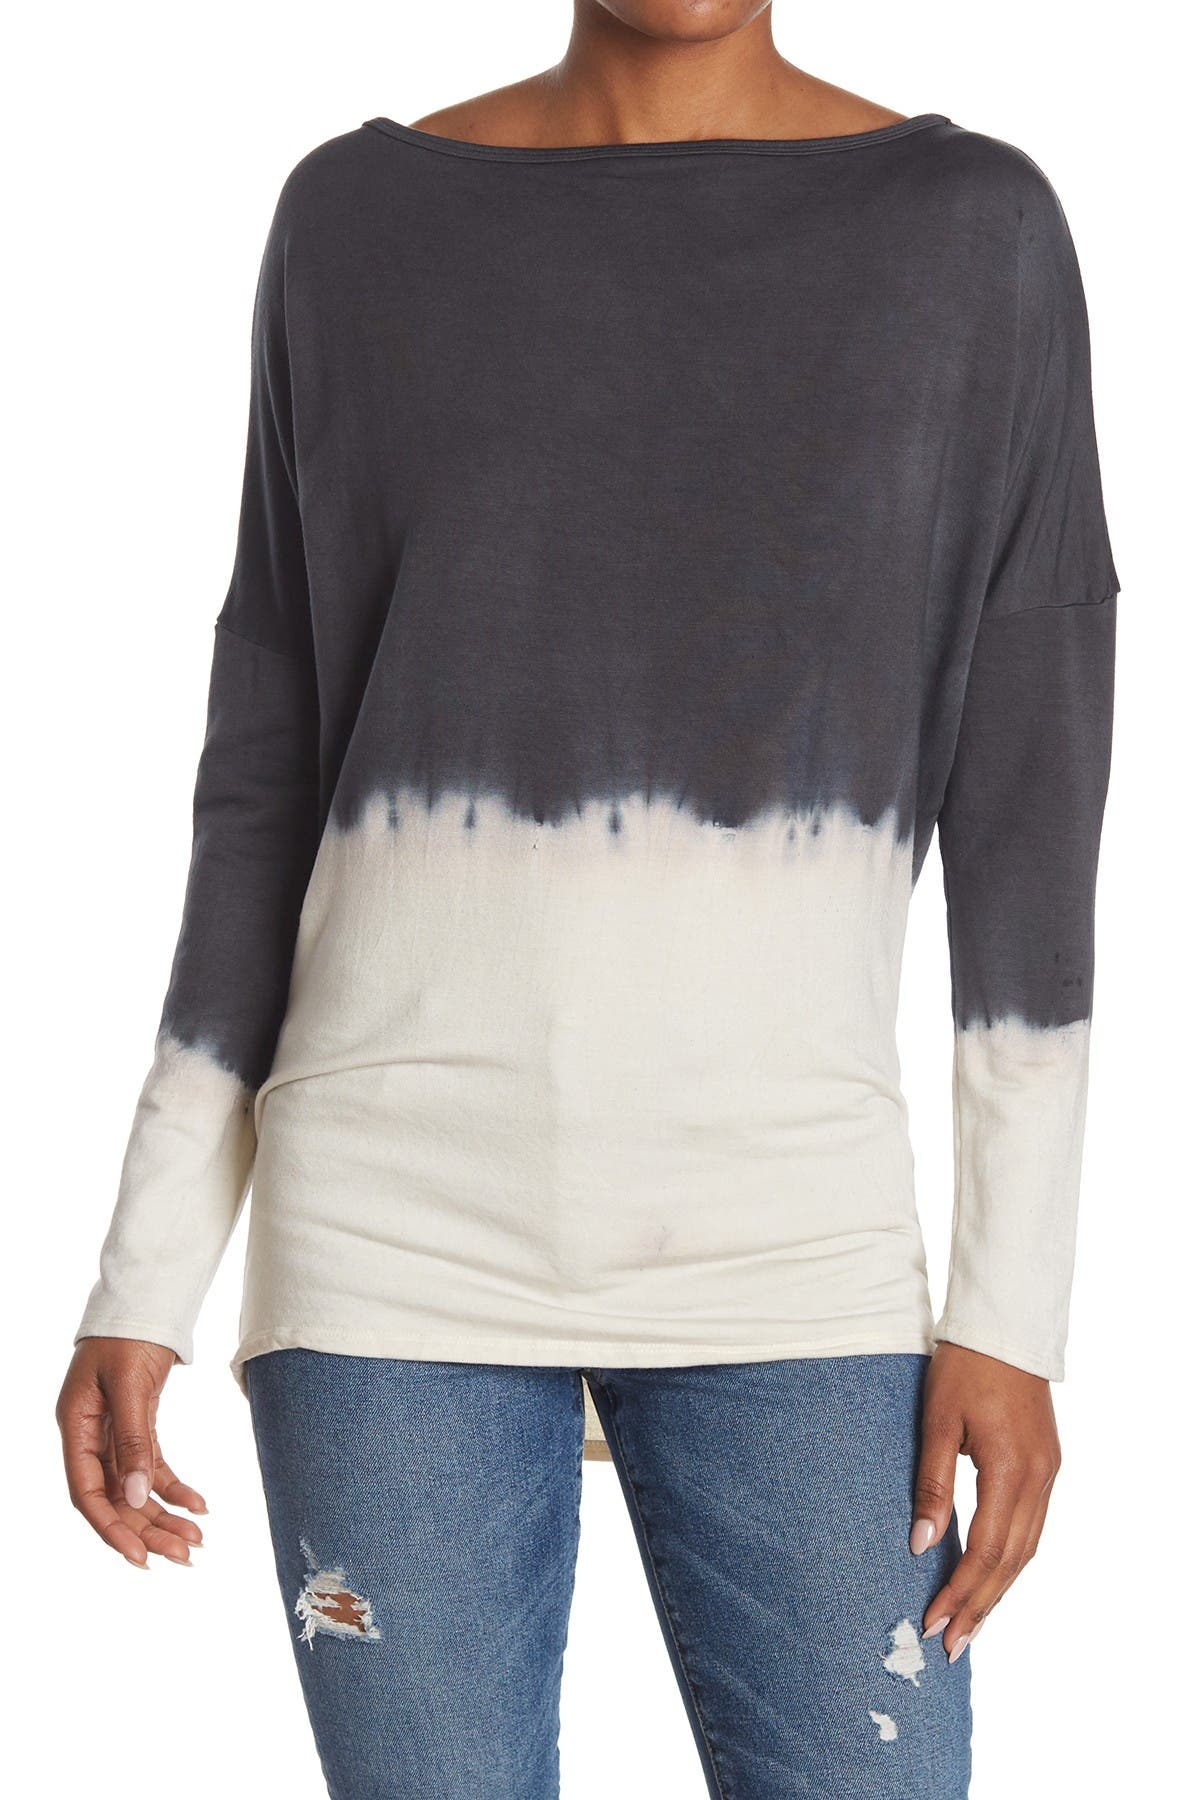 Image of Go Couture Boatneck Dolman Knit Sweater